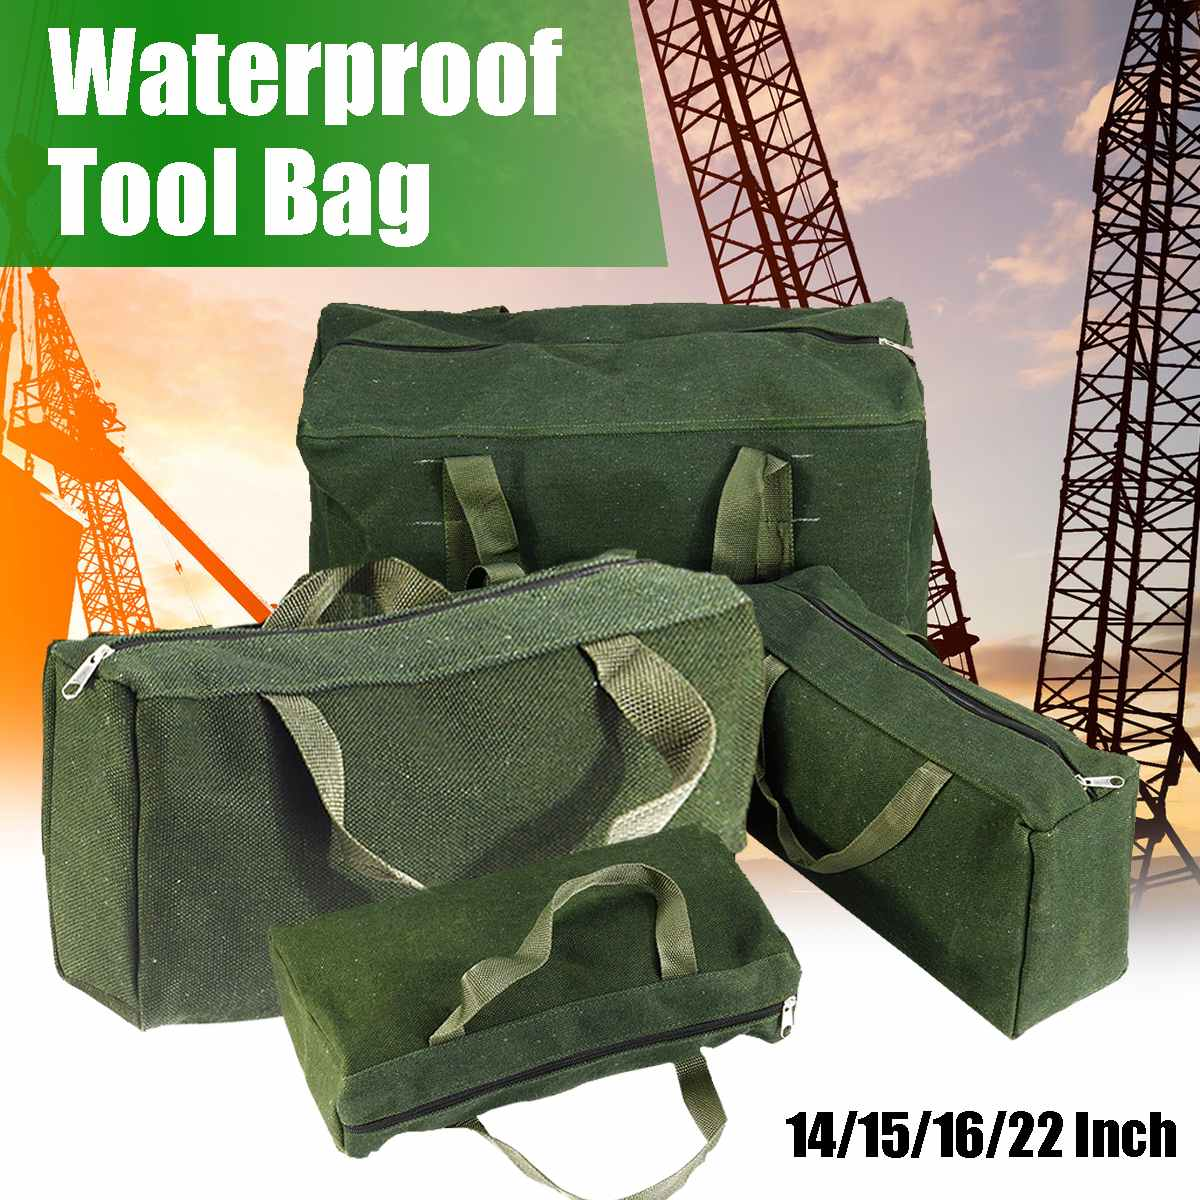 14/15/16/22inch Large Capacity Tool Bag Durable Canvas Waterproof Tool Bag Metal Screws Drill Pliers Wrench Organizer Pouch Case